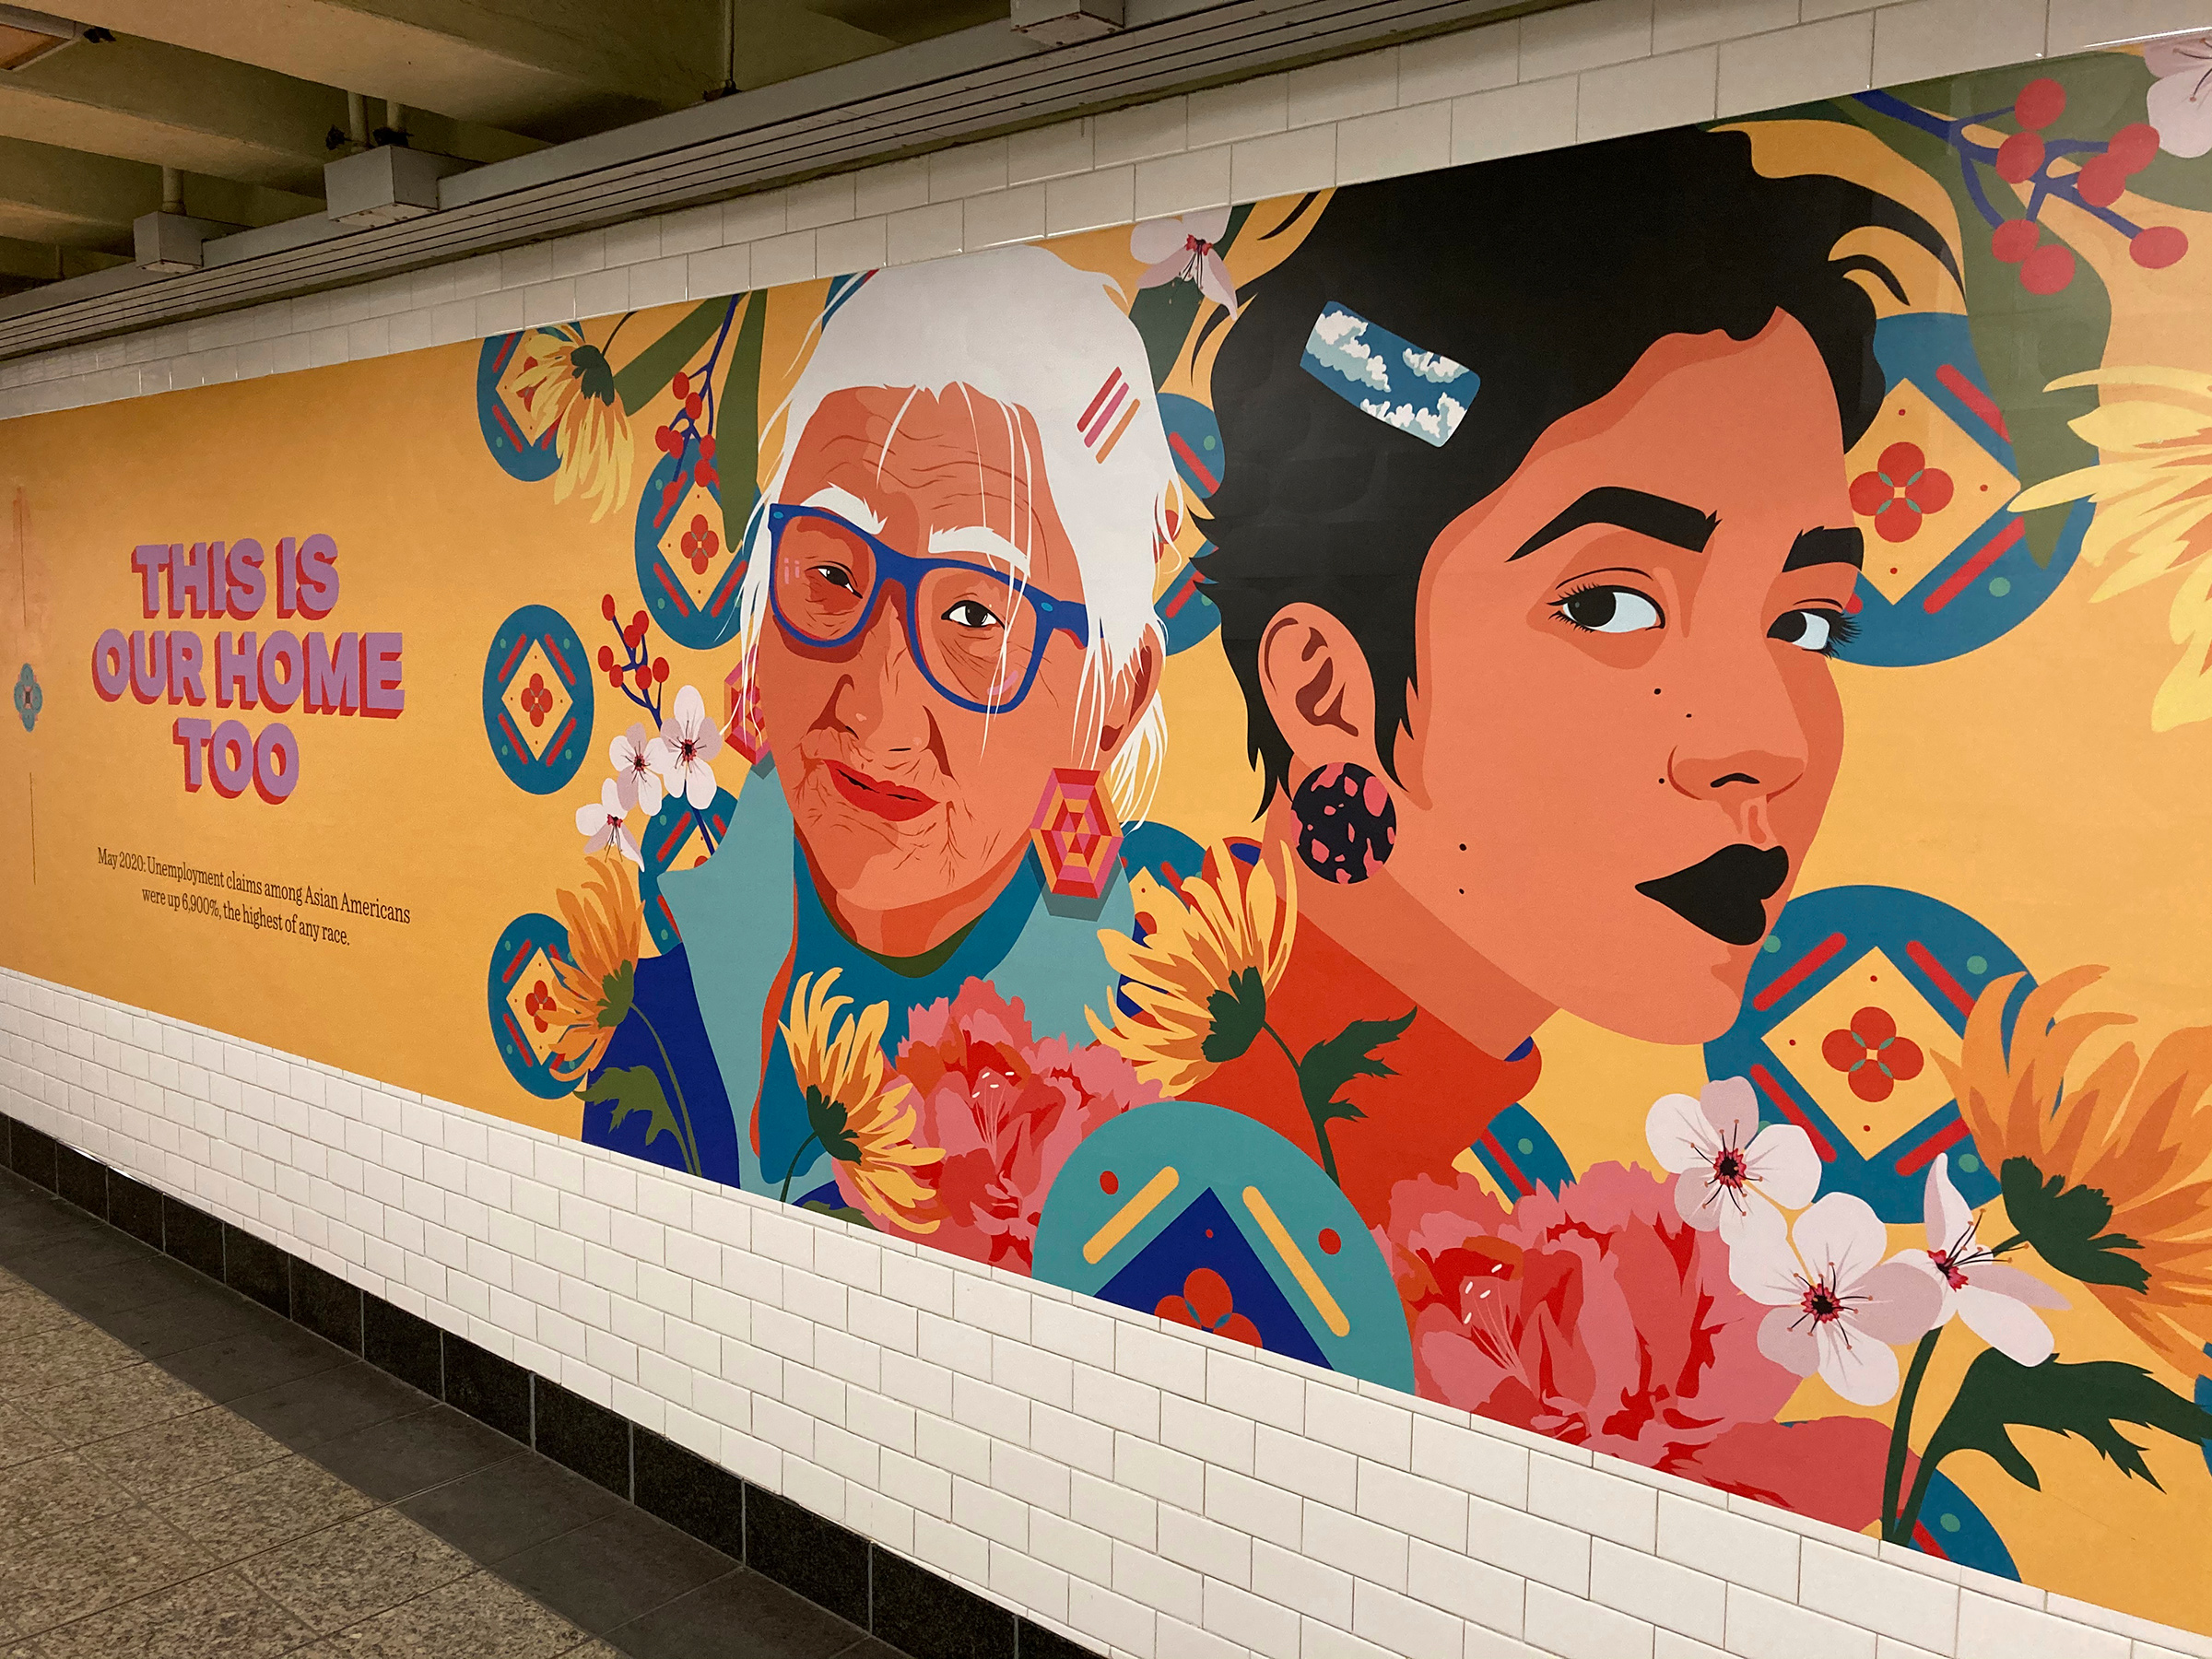 Posters against racism towards Asian Americans, by artist Amanda Phingbodhipakkiya, are seen at the subway station at Barclays Center in Brooklyn, Jan. 1